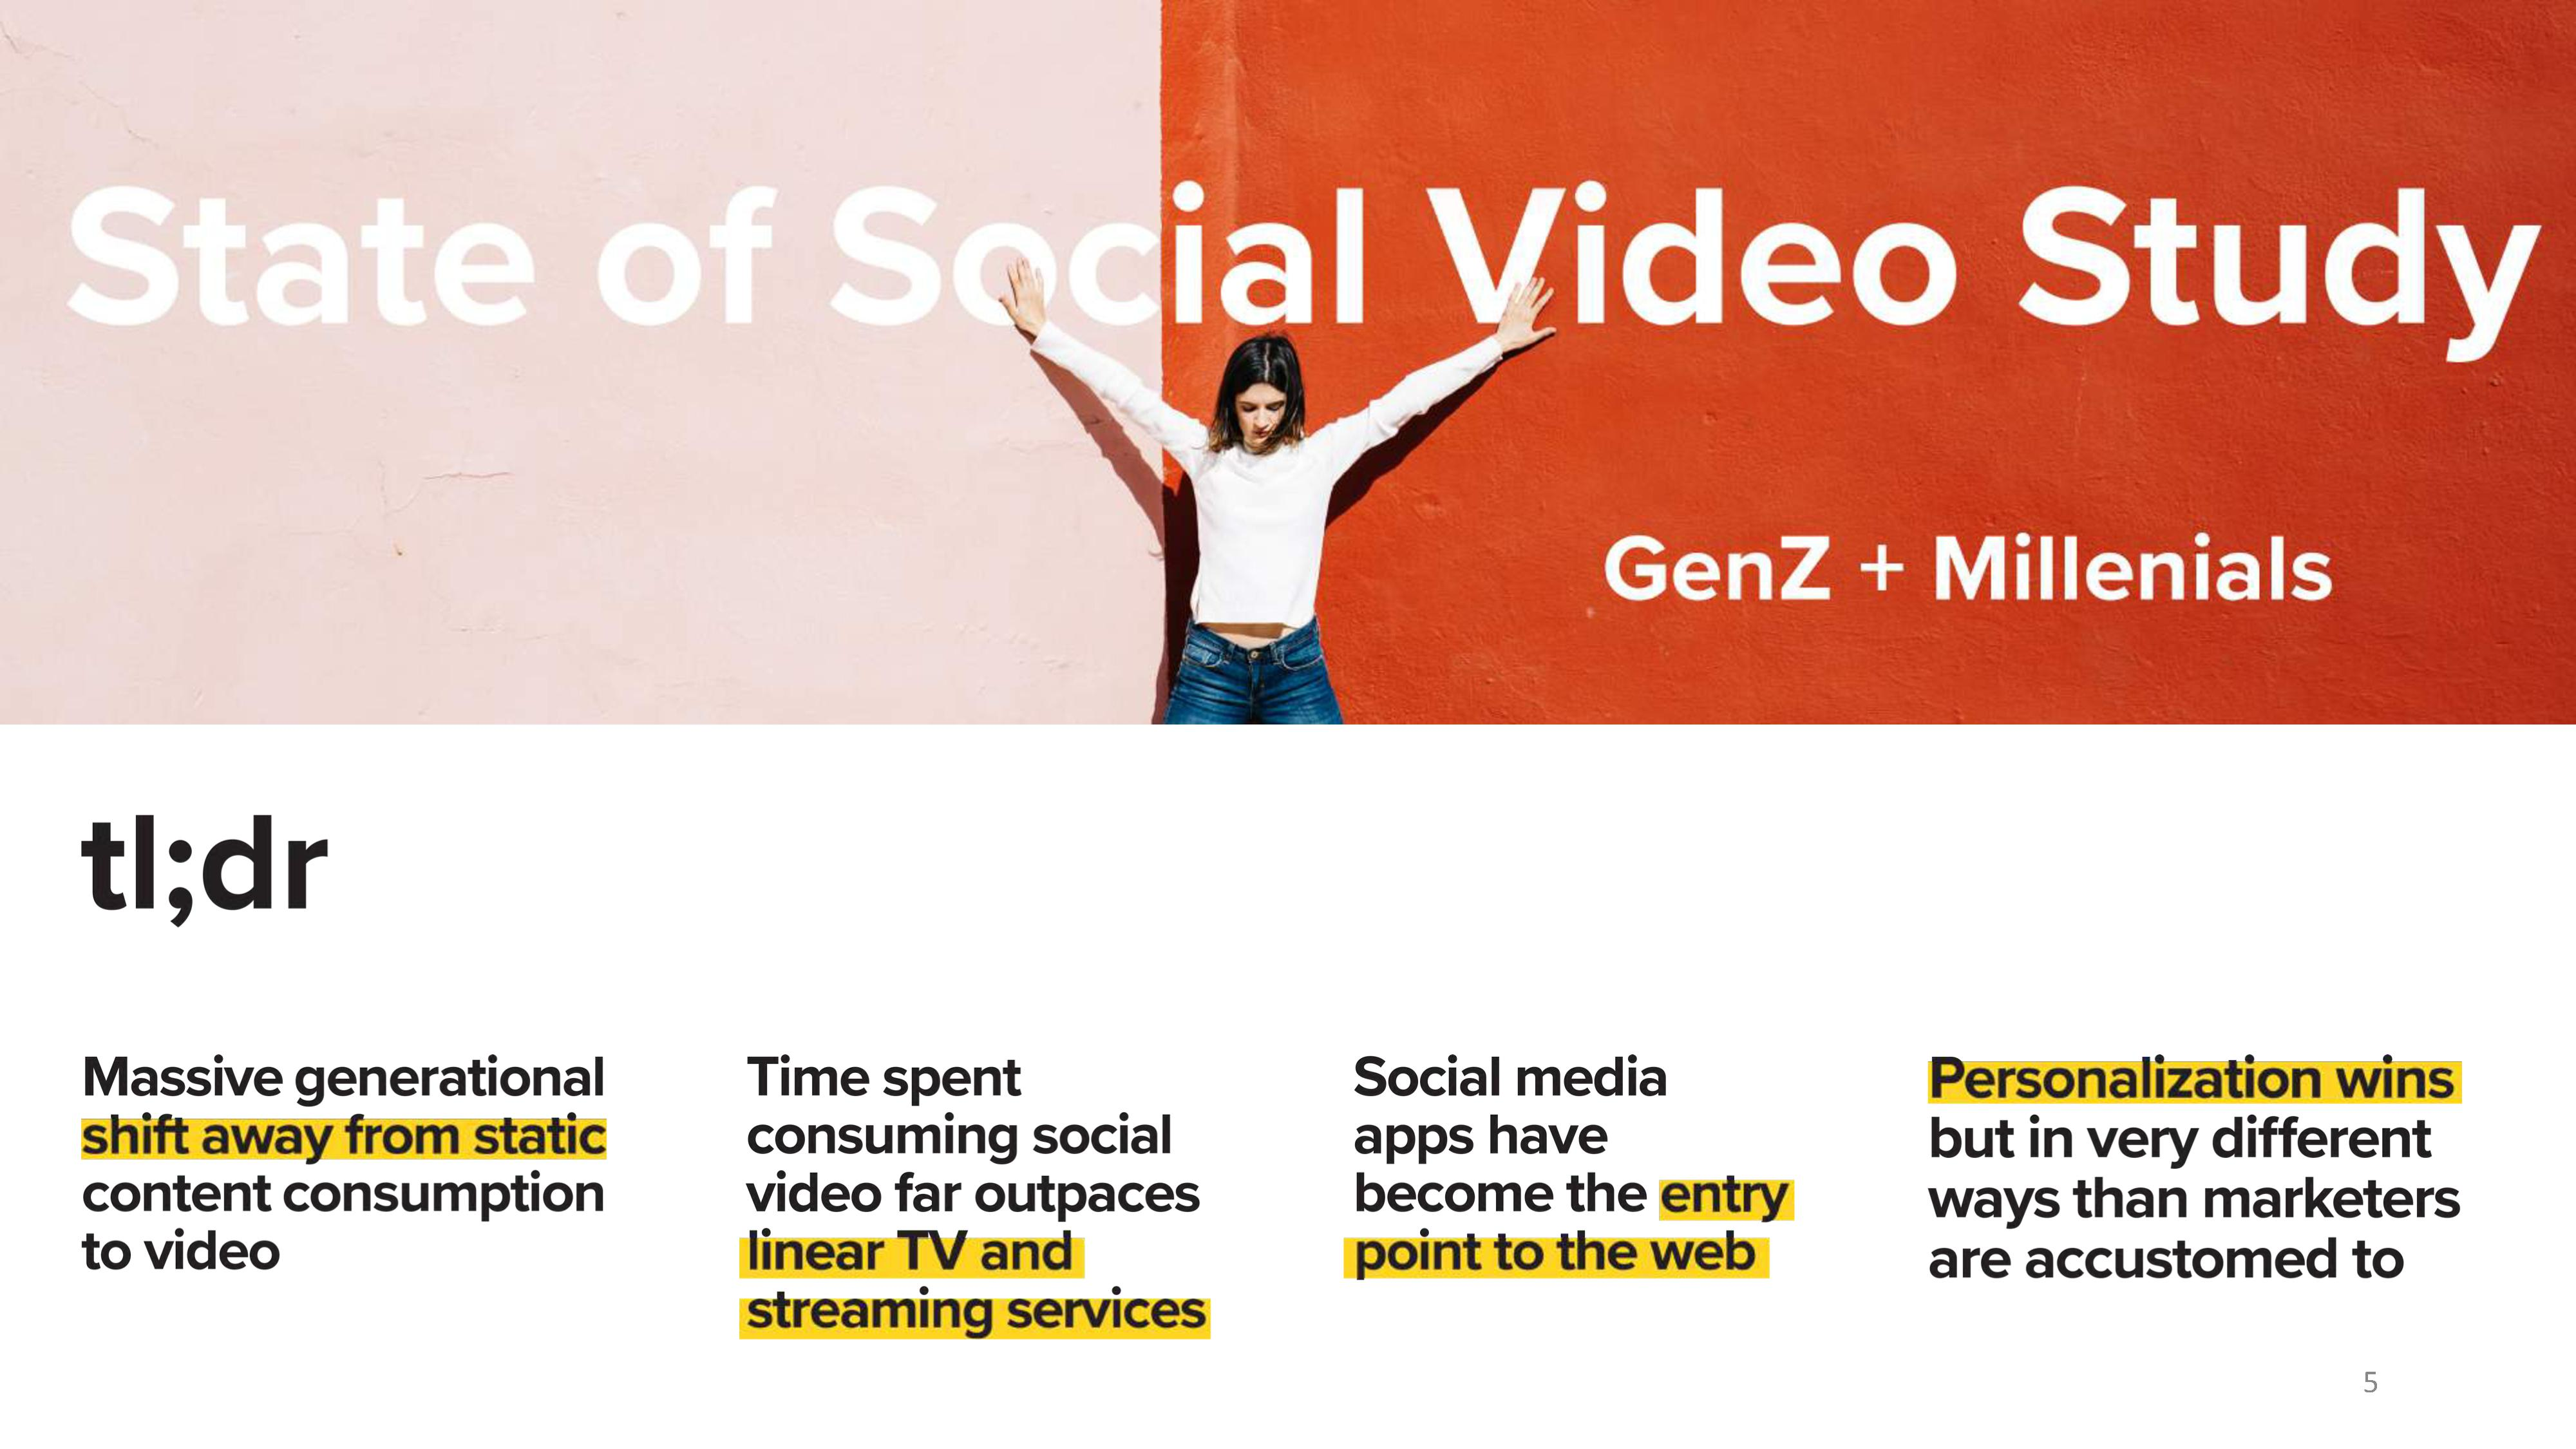 VidMob-State-of-Social-Video-Report-5